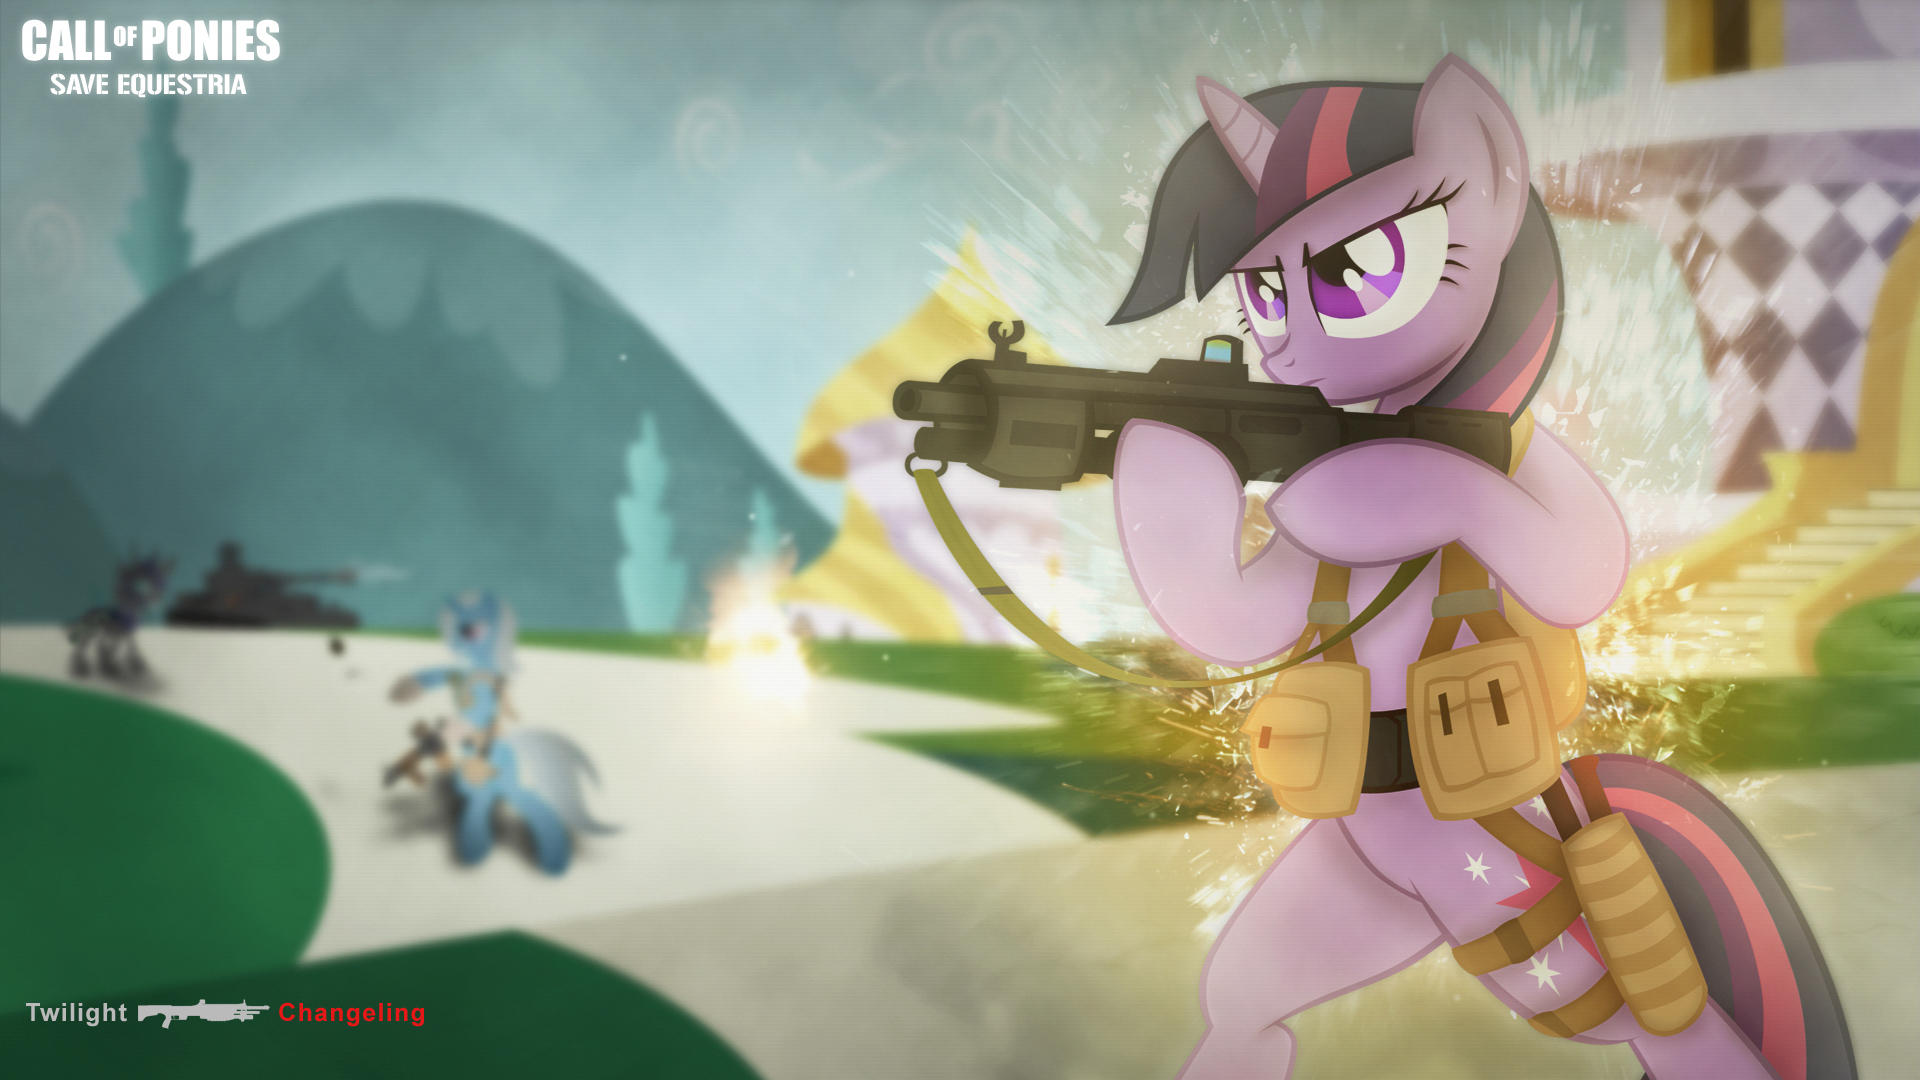 Wallpaper ~ Save Equestria. by DolphinFox, kenrick55, Mackaged, Pony-Vectors and shadawg